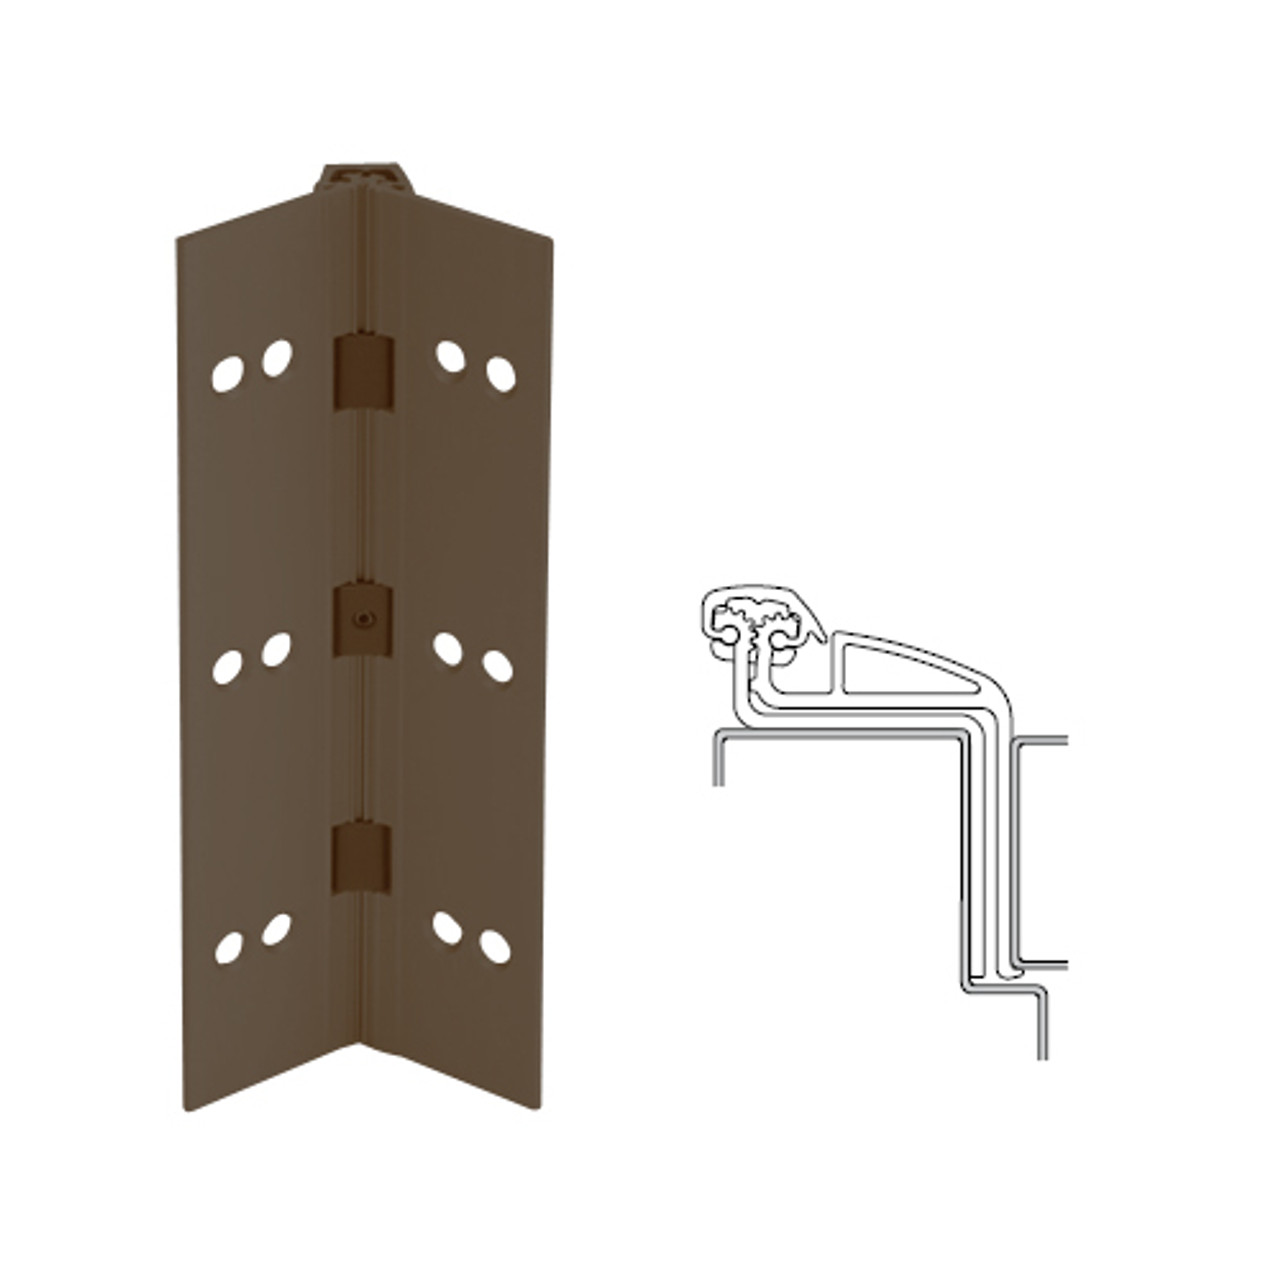 041XY-313AN-120-TEKWD IVES Full Mortise Continuous Geared Hinges with Wood Screws in Dark Bronze Anodized